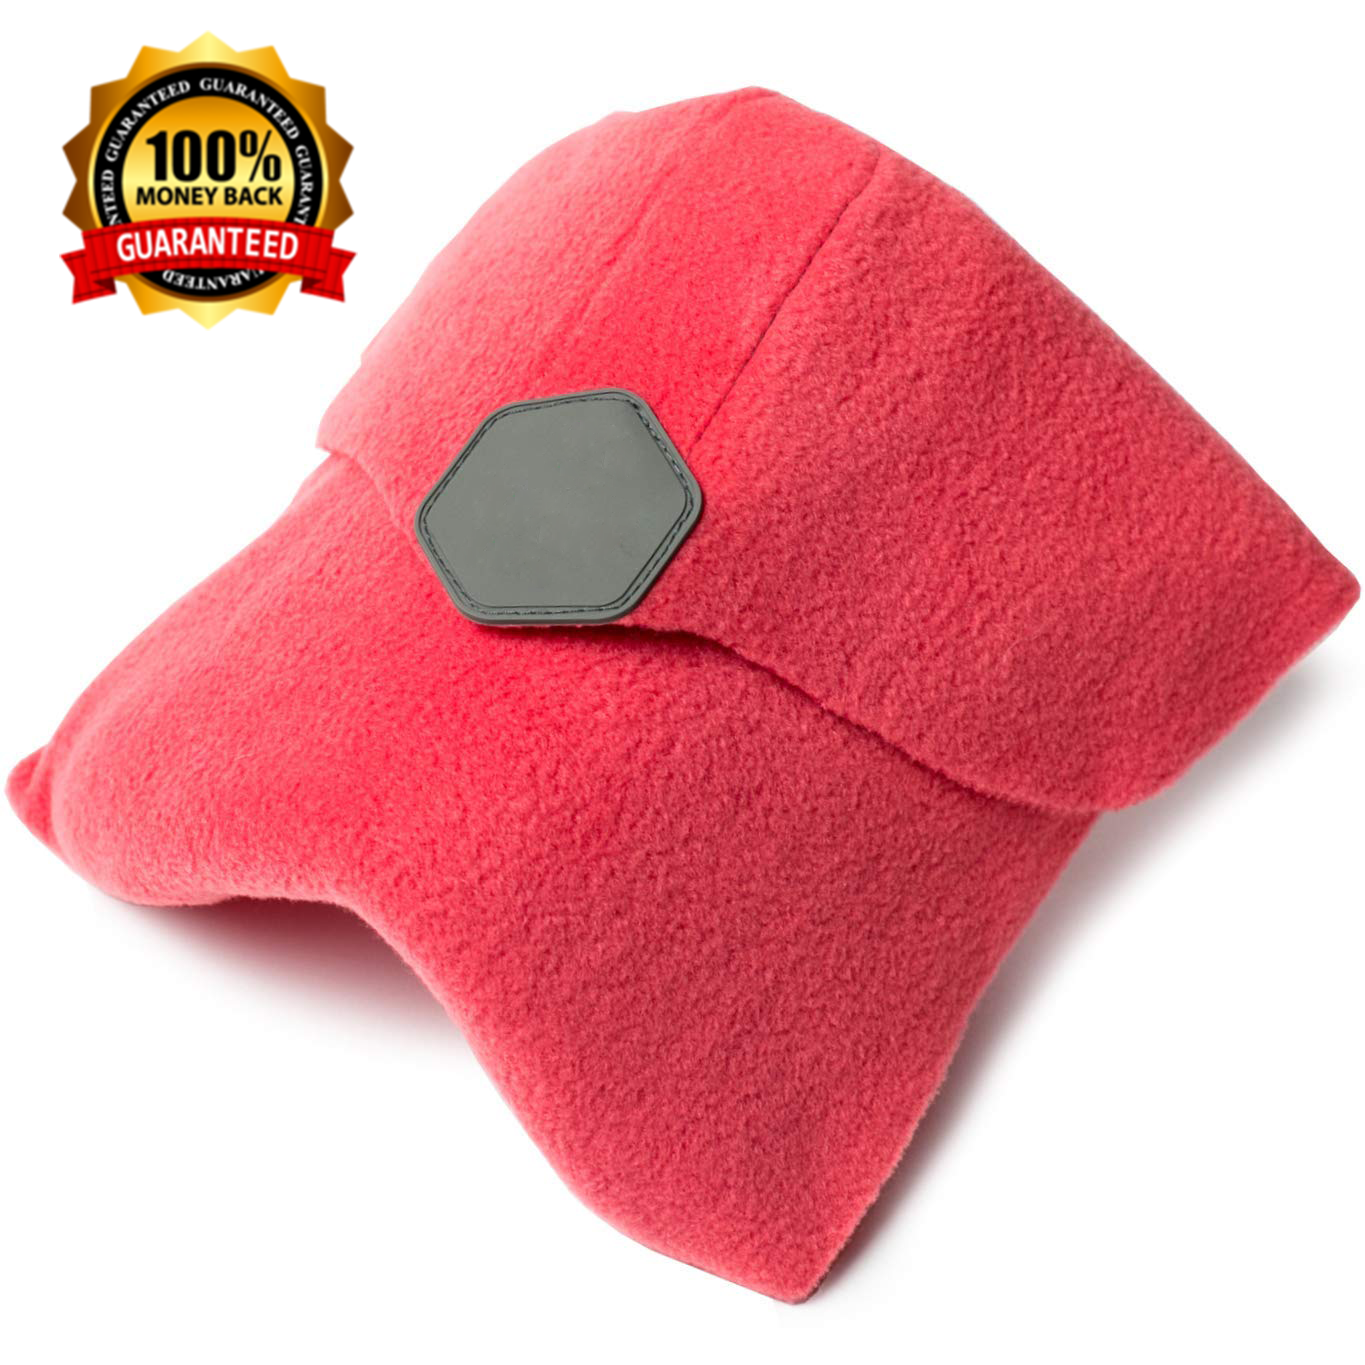 Scientifically Proven Super Soft Neck Support Travel Pillowle